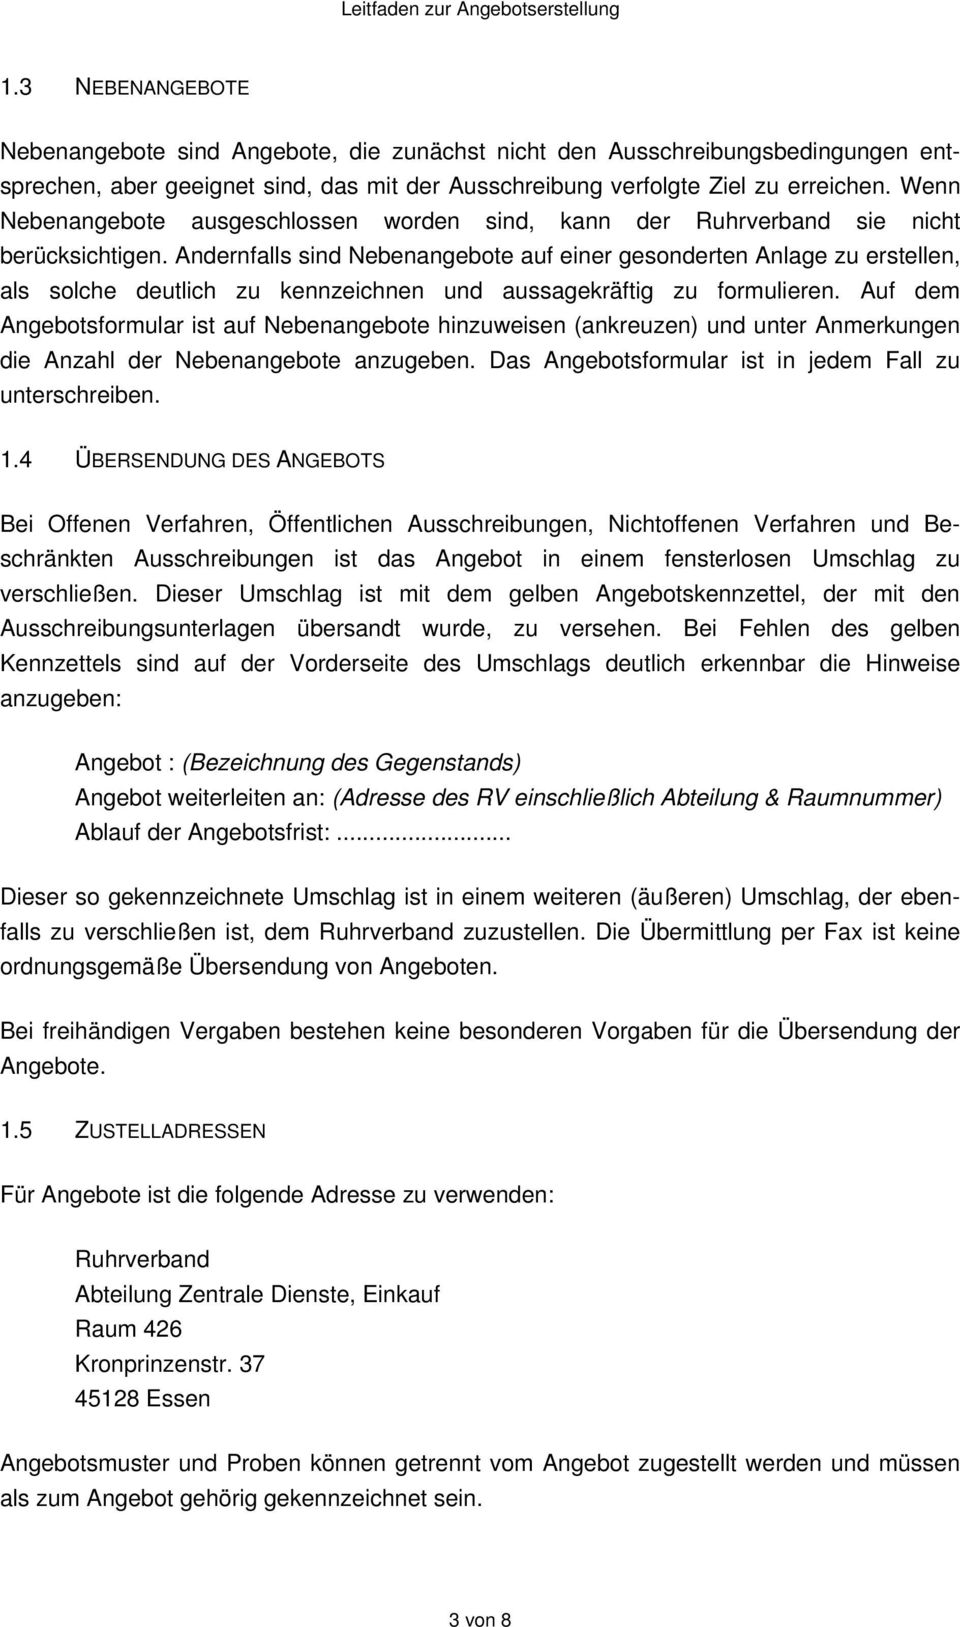 Wunderbar Google Docs Angebotsvorlage Bilder - Entry Level Resume ...